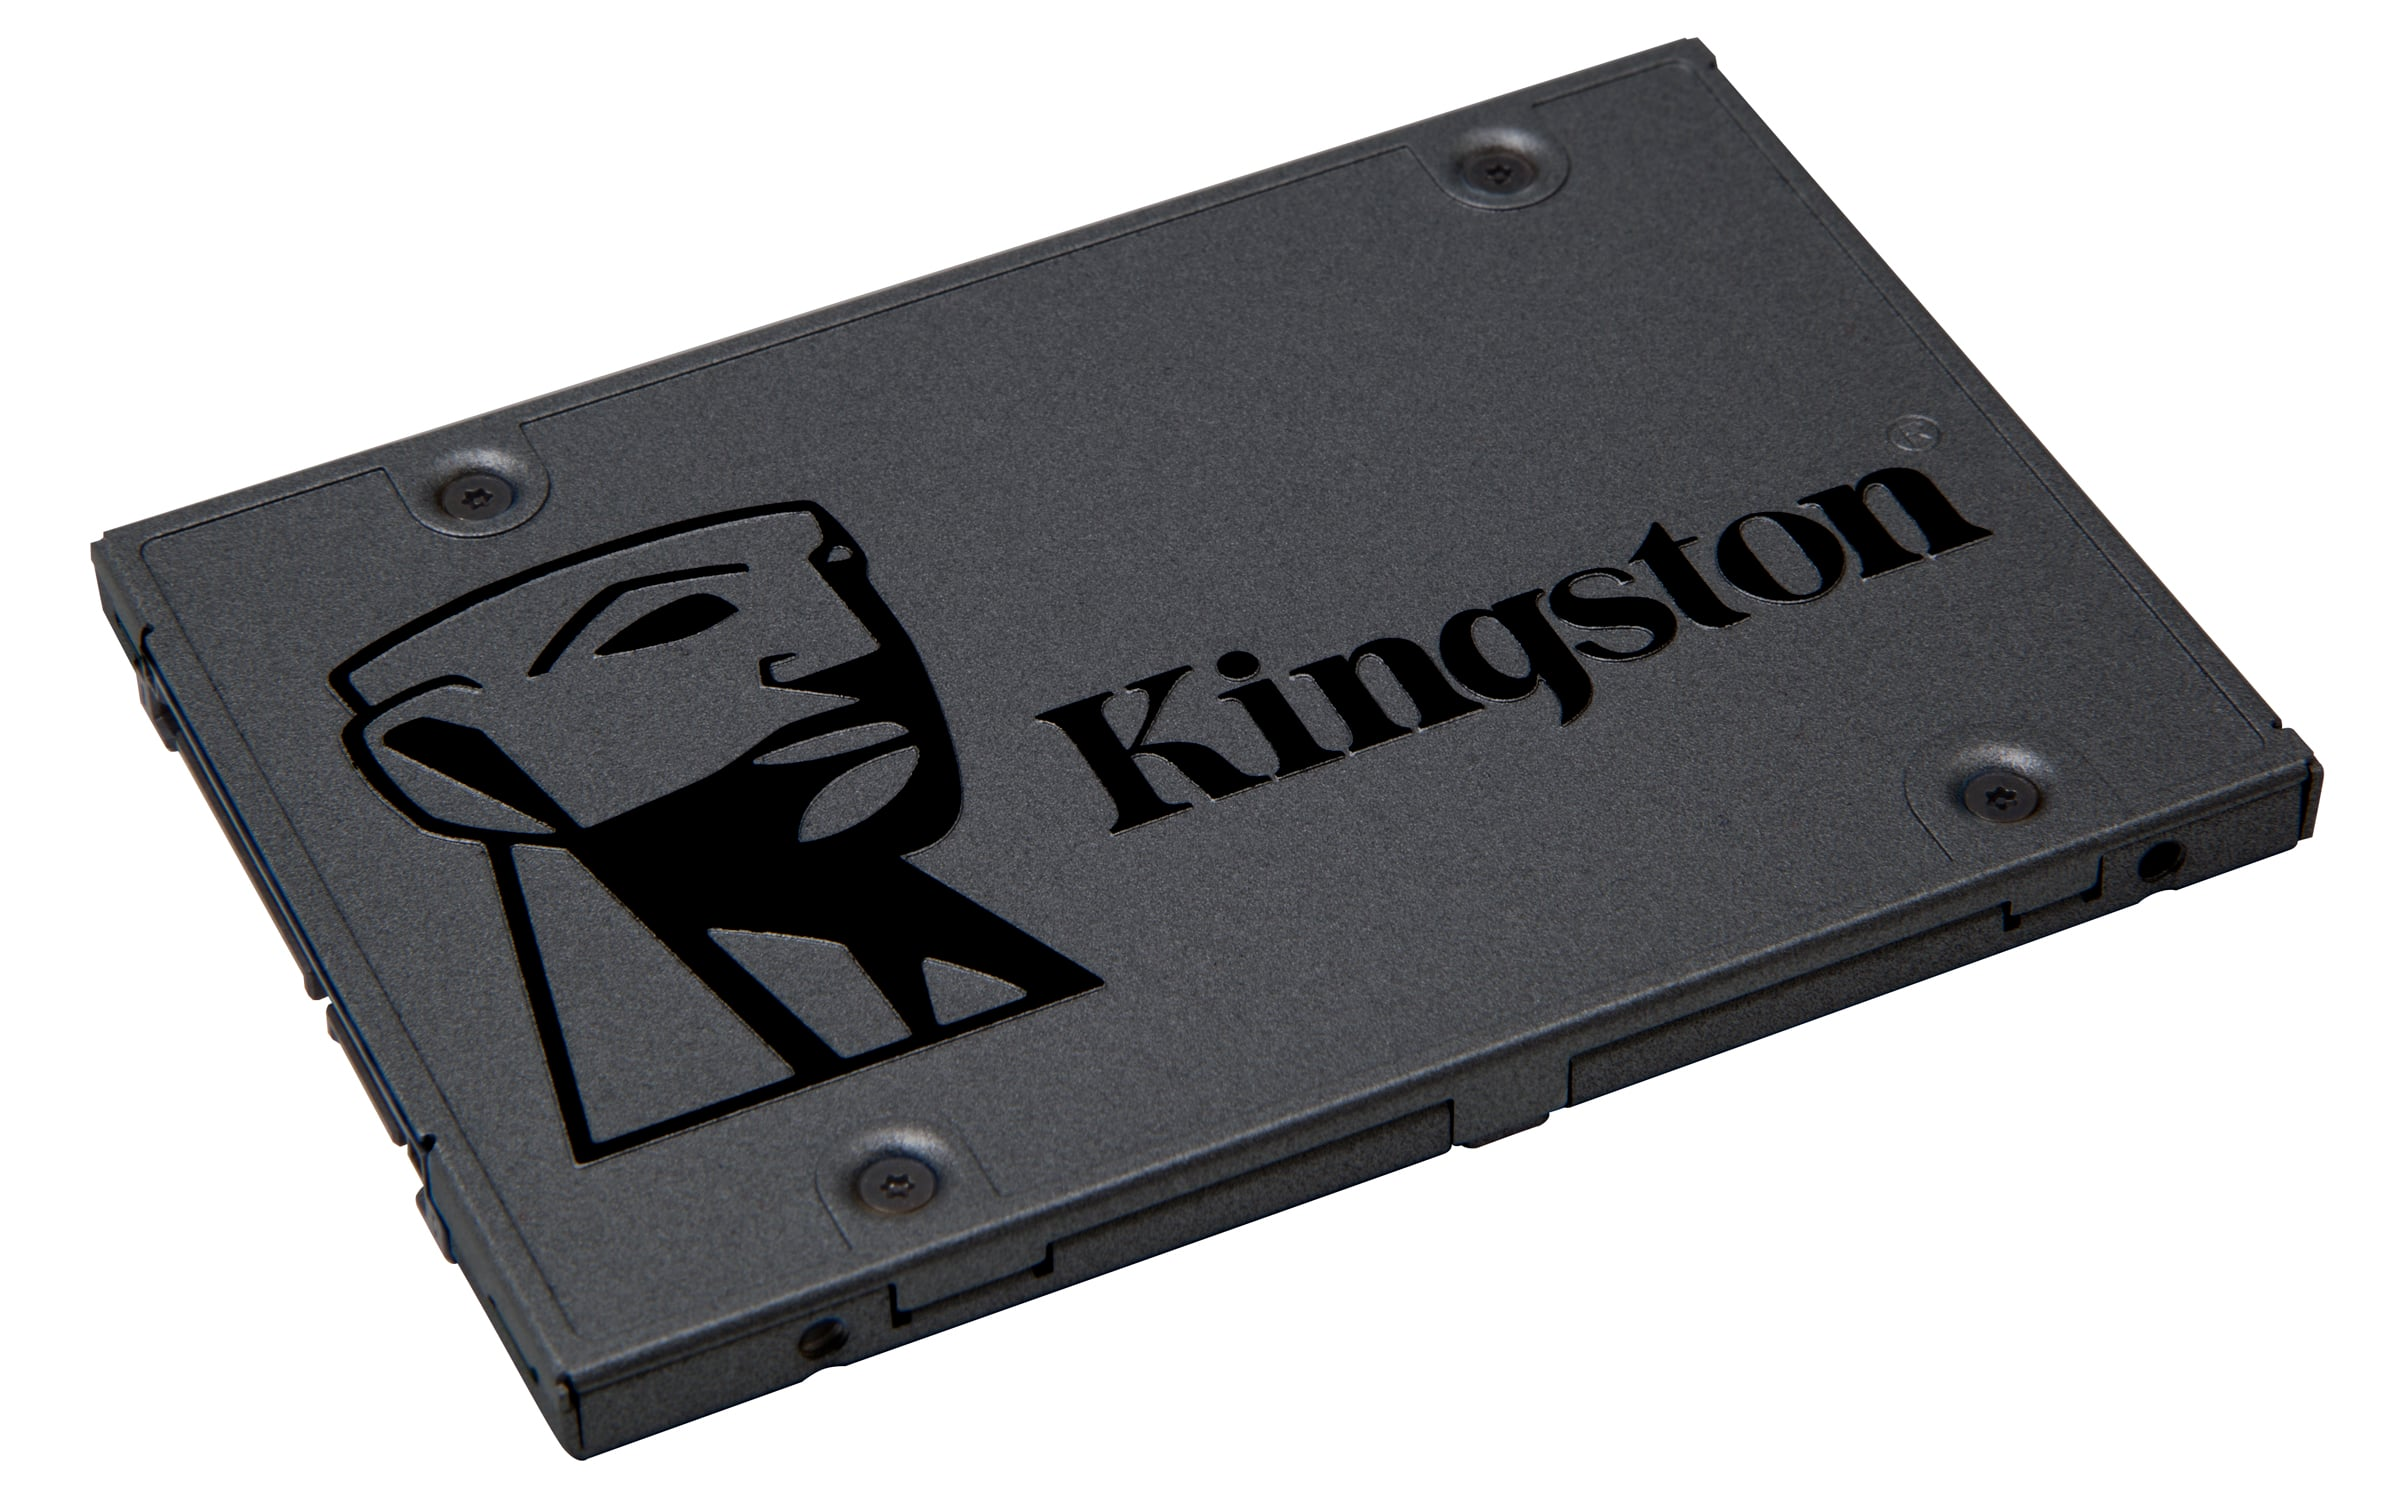 "[Amazon] Kingston A400 480GB Internal Solid State Drive – 480GB Storage, 2.5"" Form Factor, SATA III 6Gb/s, Read Speed@500Mbps, Write Speed@450Mbps - SA400S37/480G $46.99"